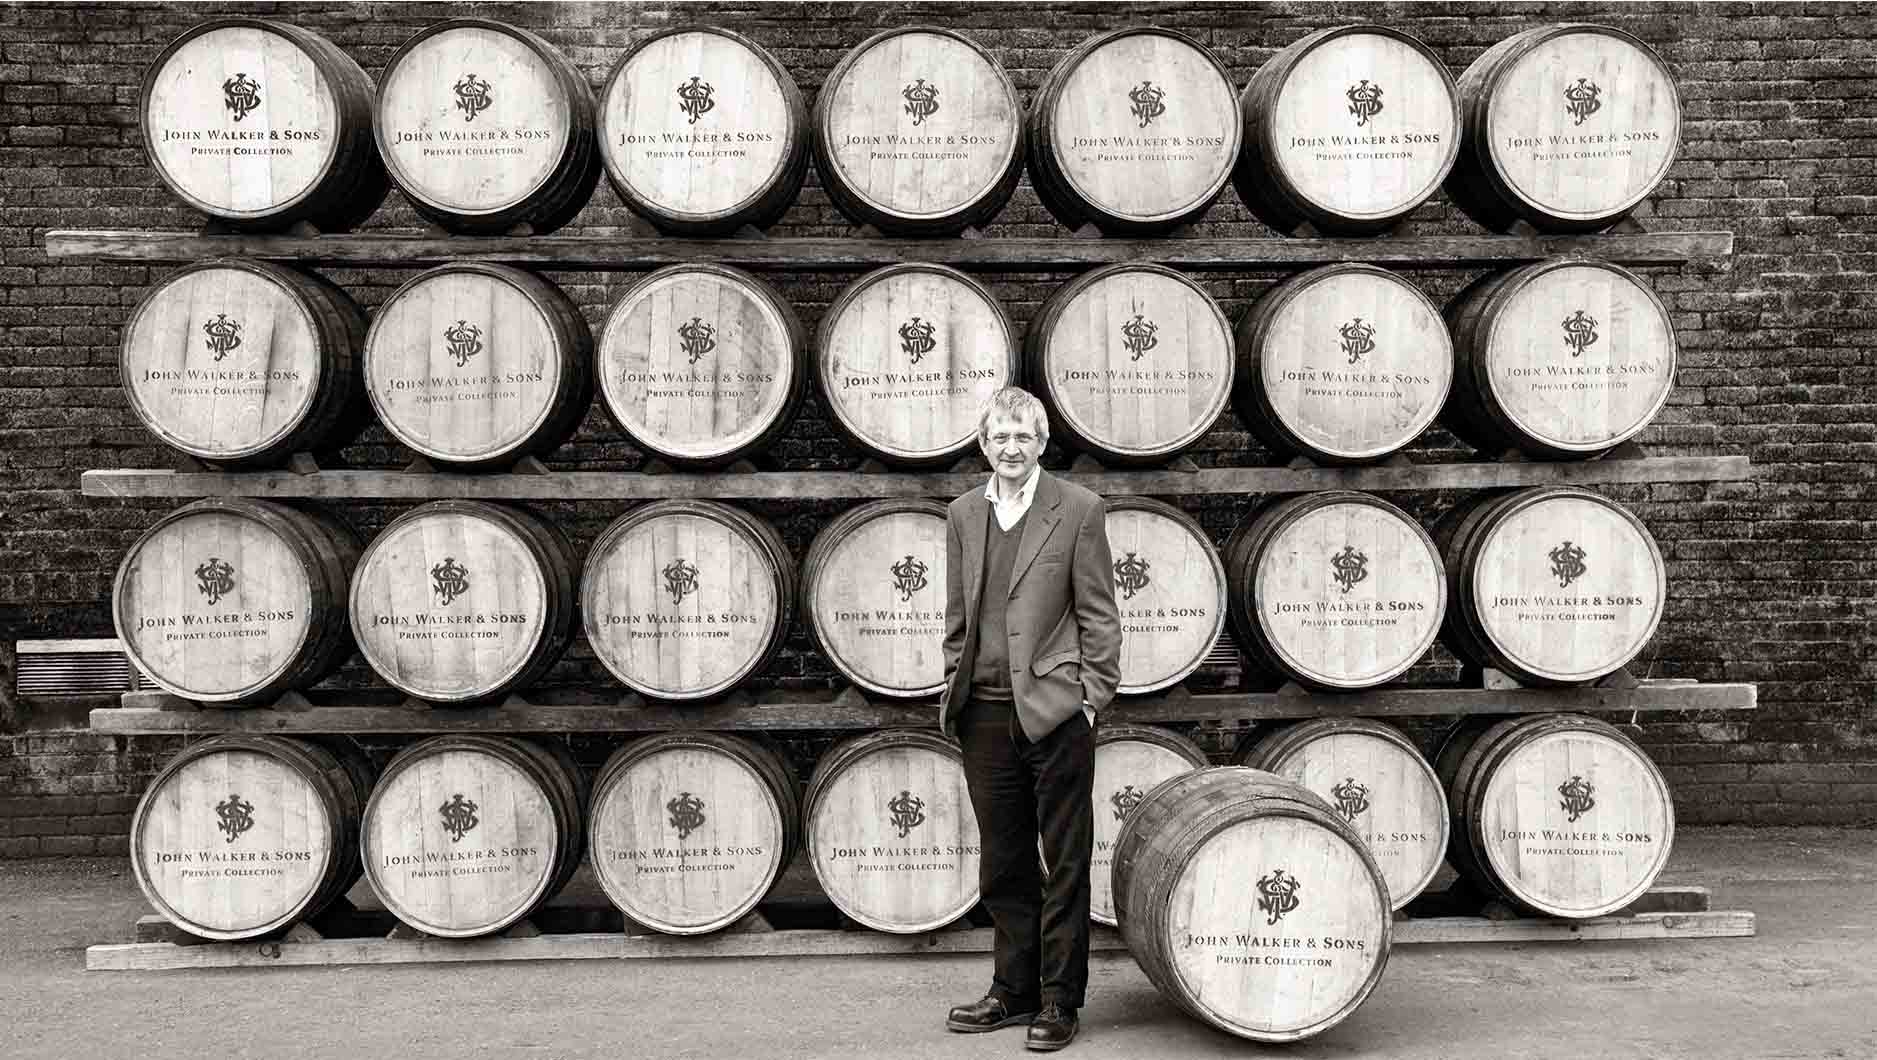 Jim Beveridge and John Walker & Sons Private Collection whisky casks